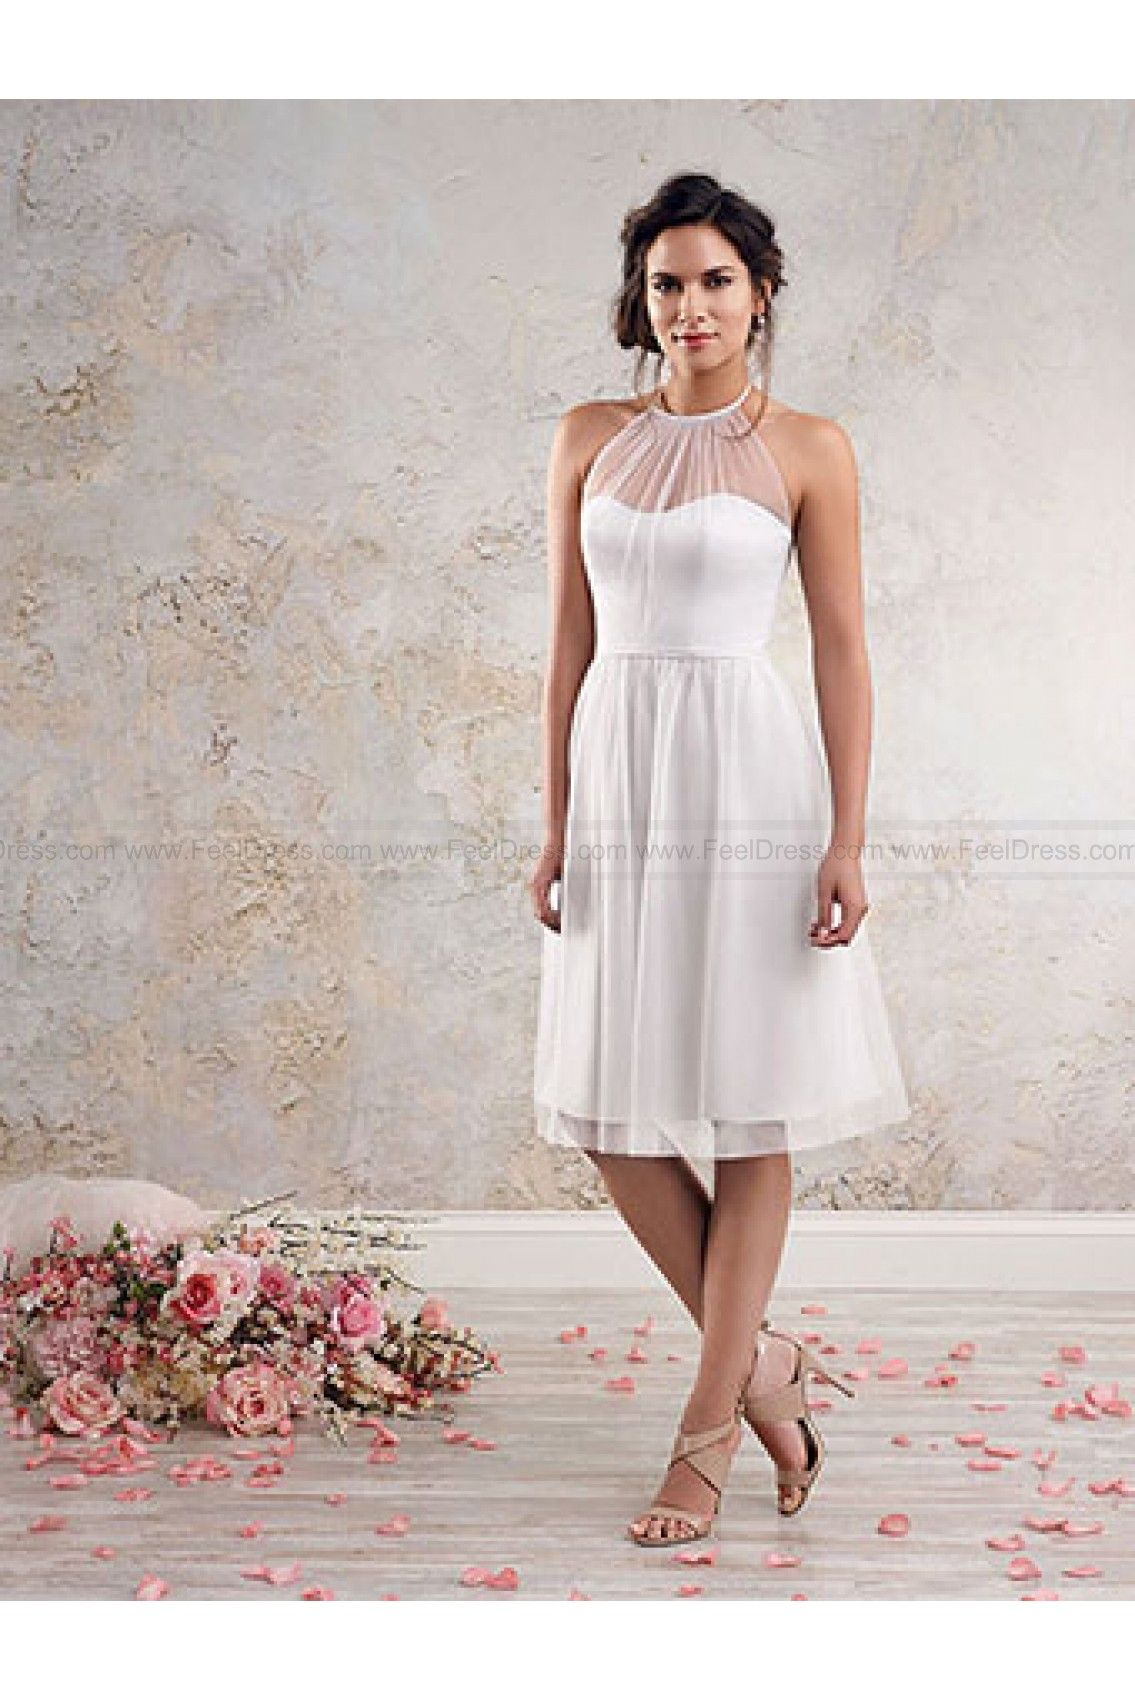 Alfred angelo bridesmaid dress style 8634s new alfred angelo alfred angelo bridesmaid dress style 8634s new ombrellifo Image collections